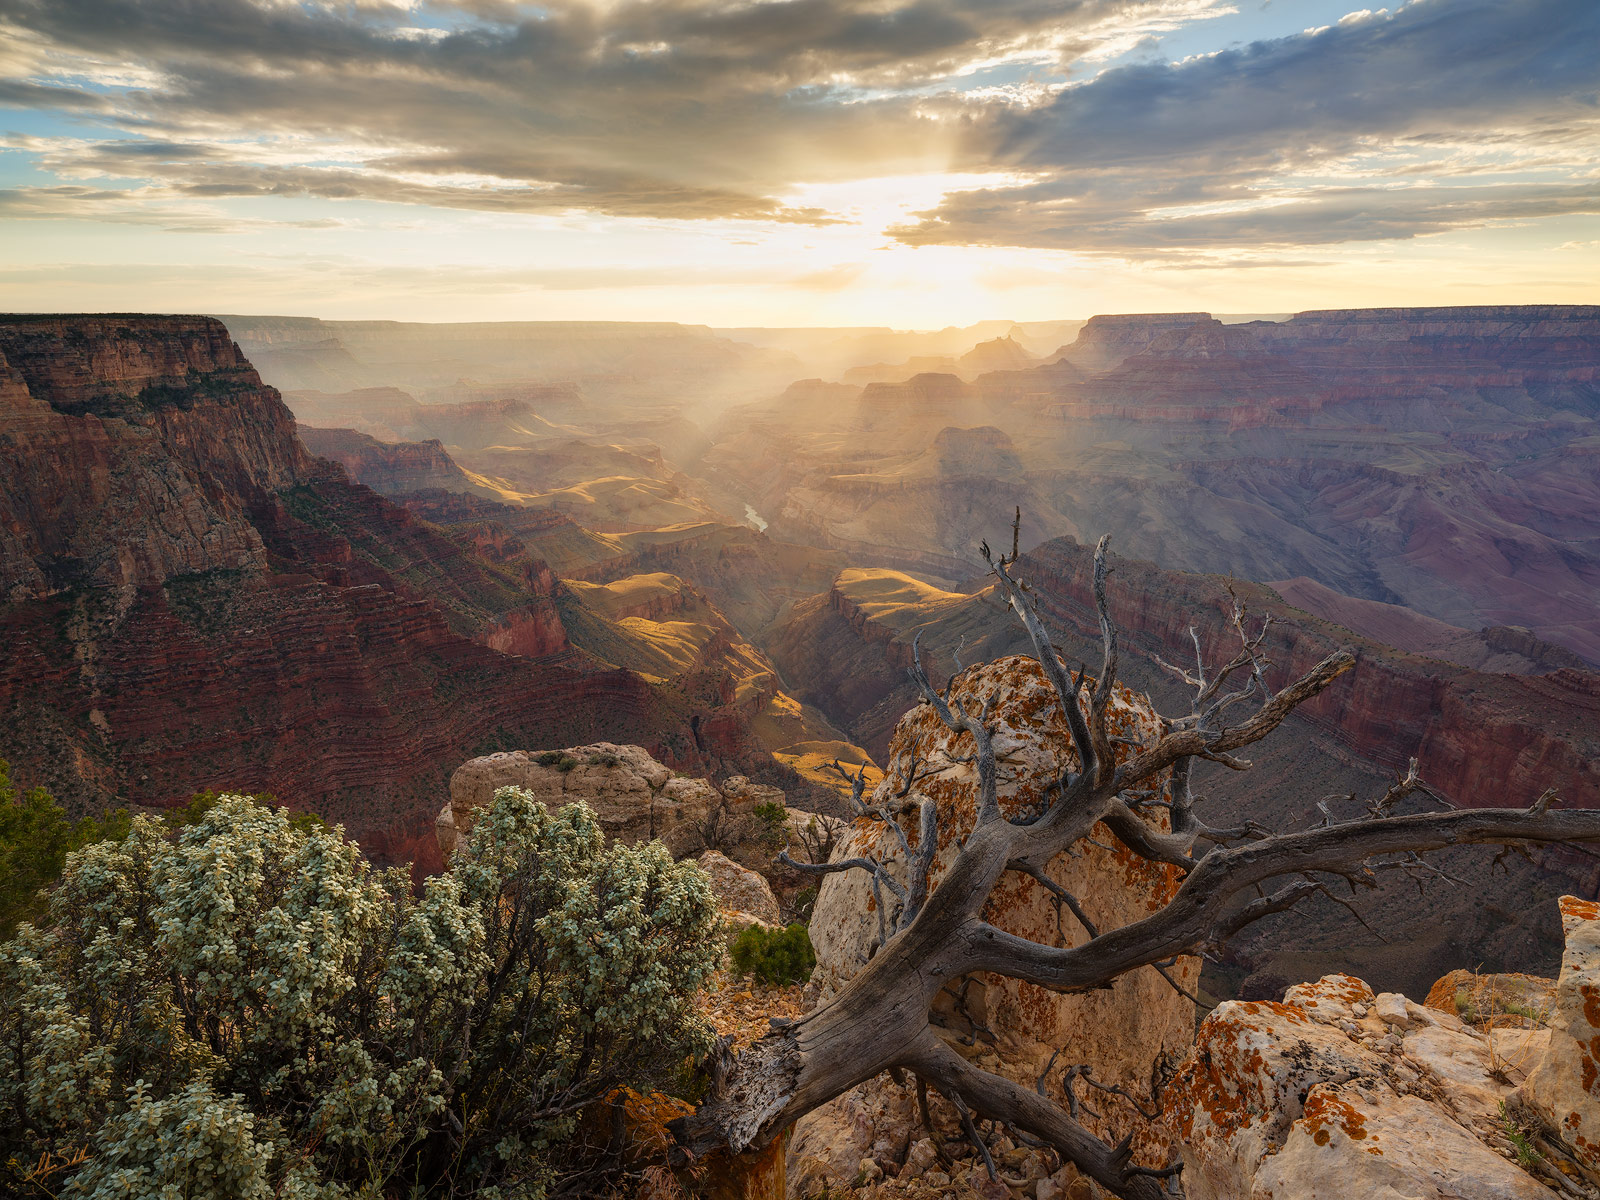 AZ, Arizona, Colorado River, Fuji, Fujifilm, GFX 50R, Grand Canyon, Lipan Point, National Park, South Rim, Sunset, photo